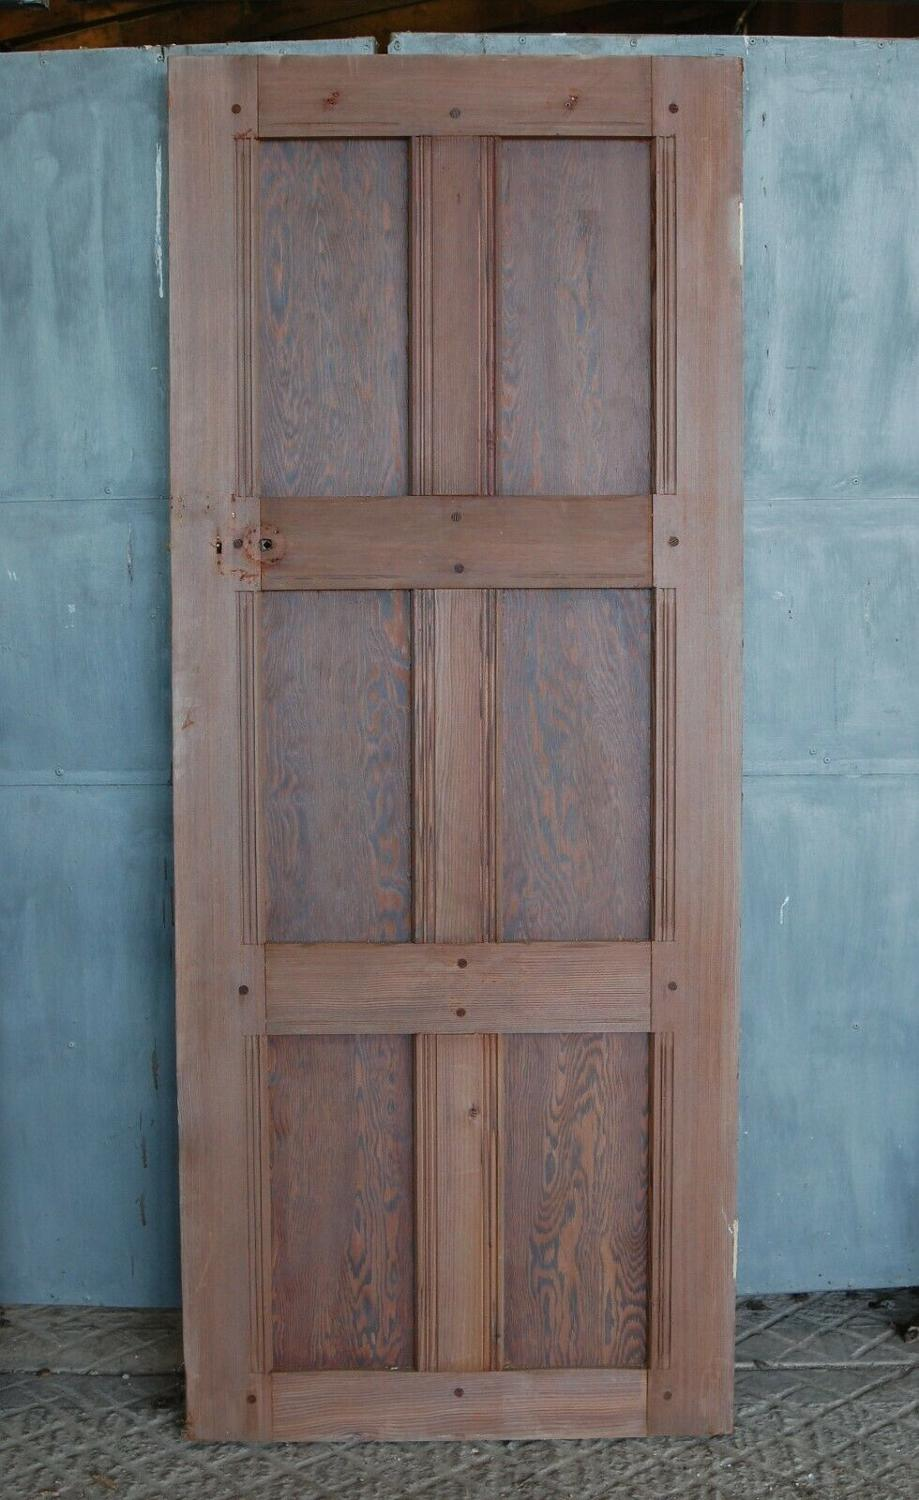 DI0671 A RECLAIMED PITCH PINE ARTS AND CRAFTS INTERNAL DOOR